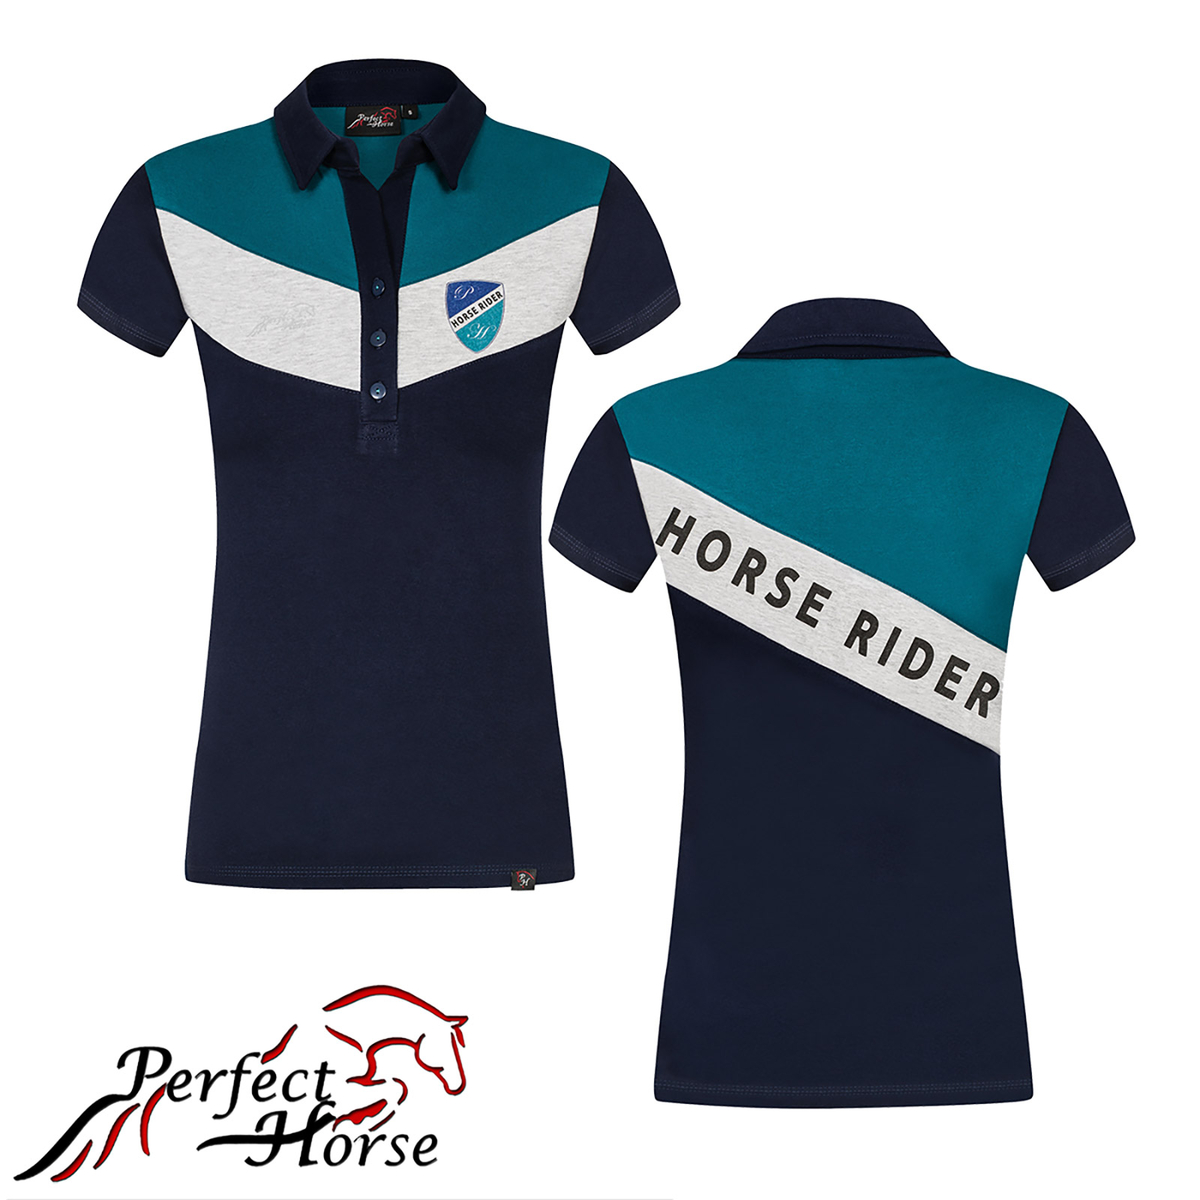 69c053d83 Horse Riders Polo Shirts - BCD Tofu House